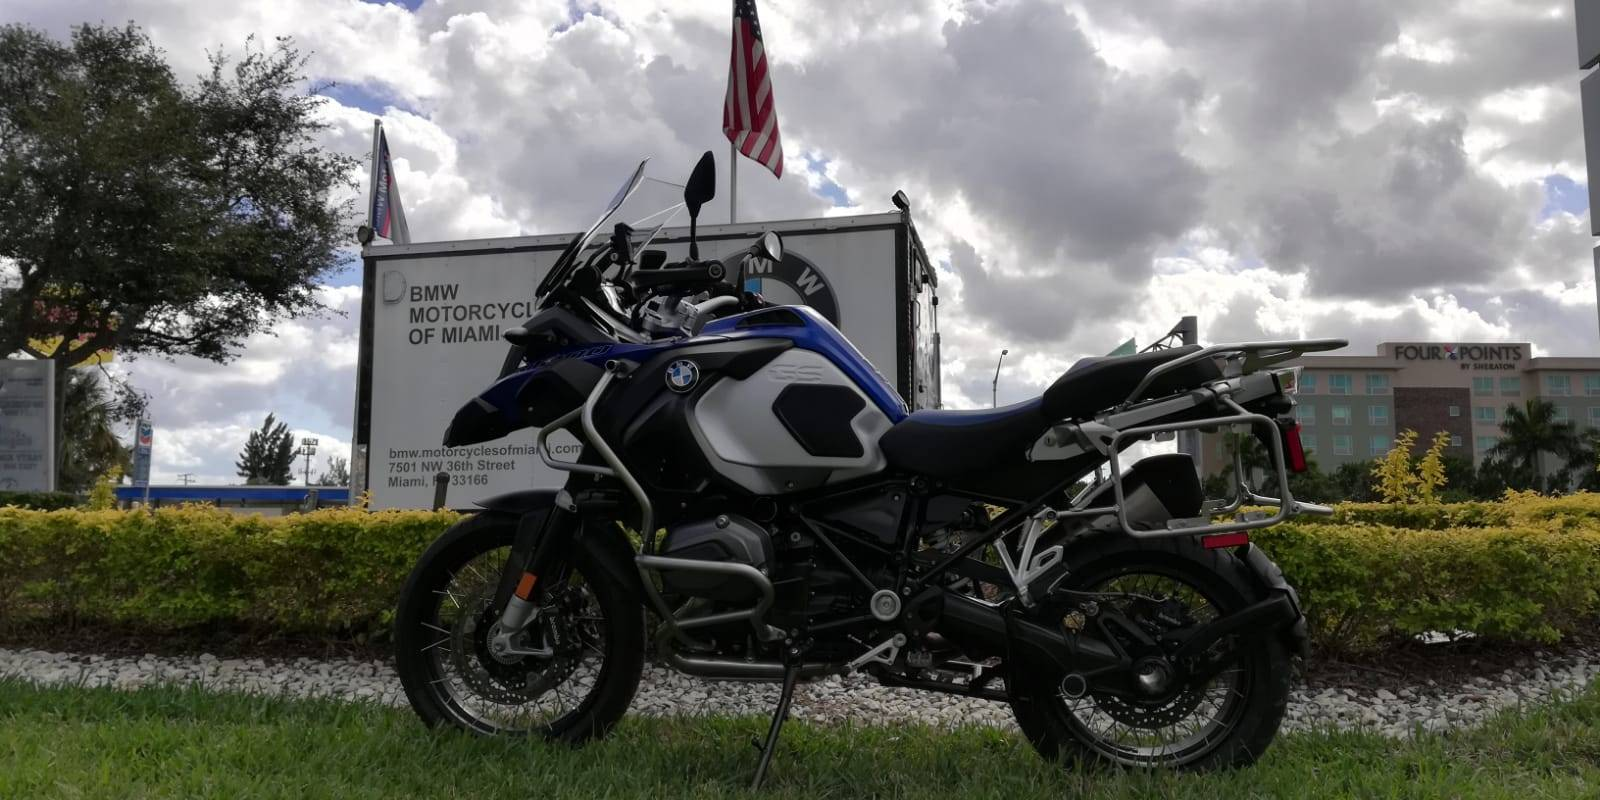 Used 2015 BMW R 1200 GSA for sale, BMW R 1200GSA for sale, BMW Motorcycle R1200GSA, used BMW Adventure, Dual, GS, BMW. BMW Motorcycles of Miami, Motorcycles of Miami, Motorcycles Miami, New Motorcycles, Used Motorcycles, pre-owned. #BMWMotorcyclesOfMiami #MotorcyclesOfMiami. - Photo 1